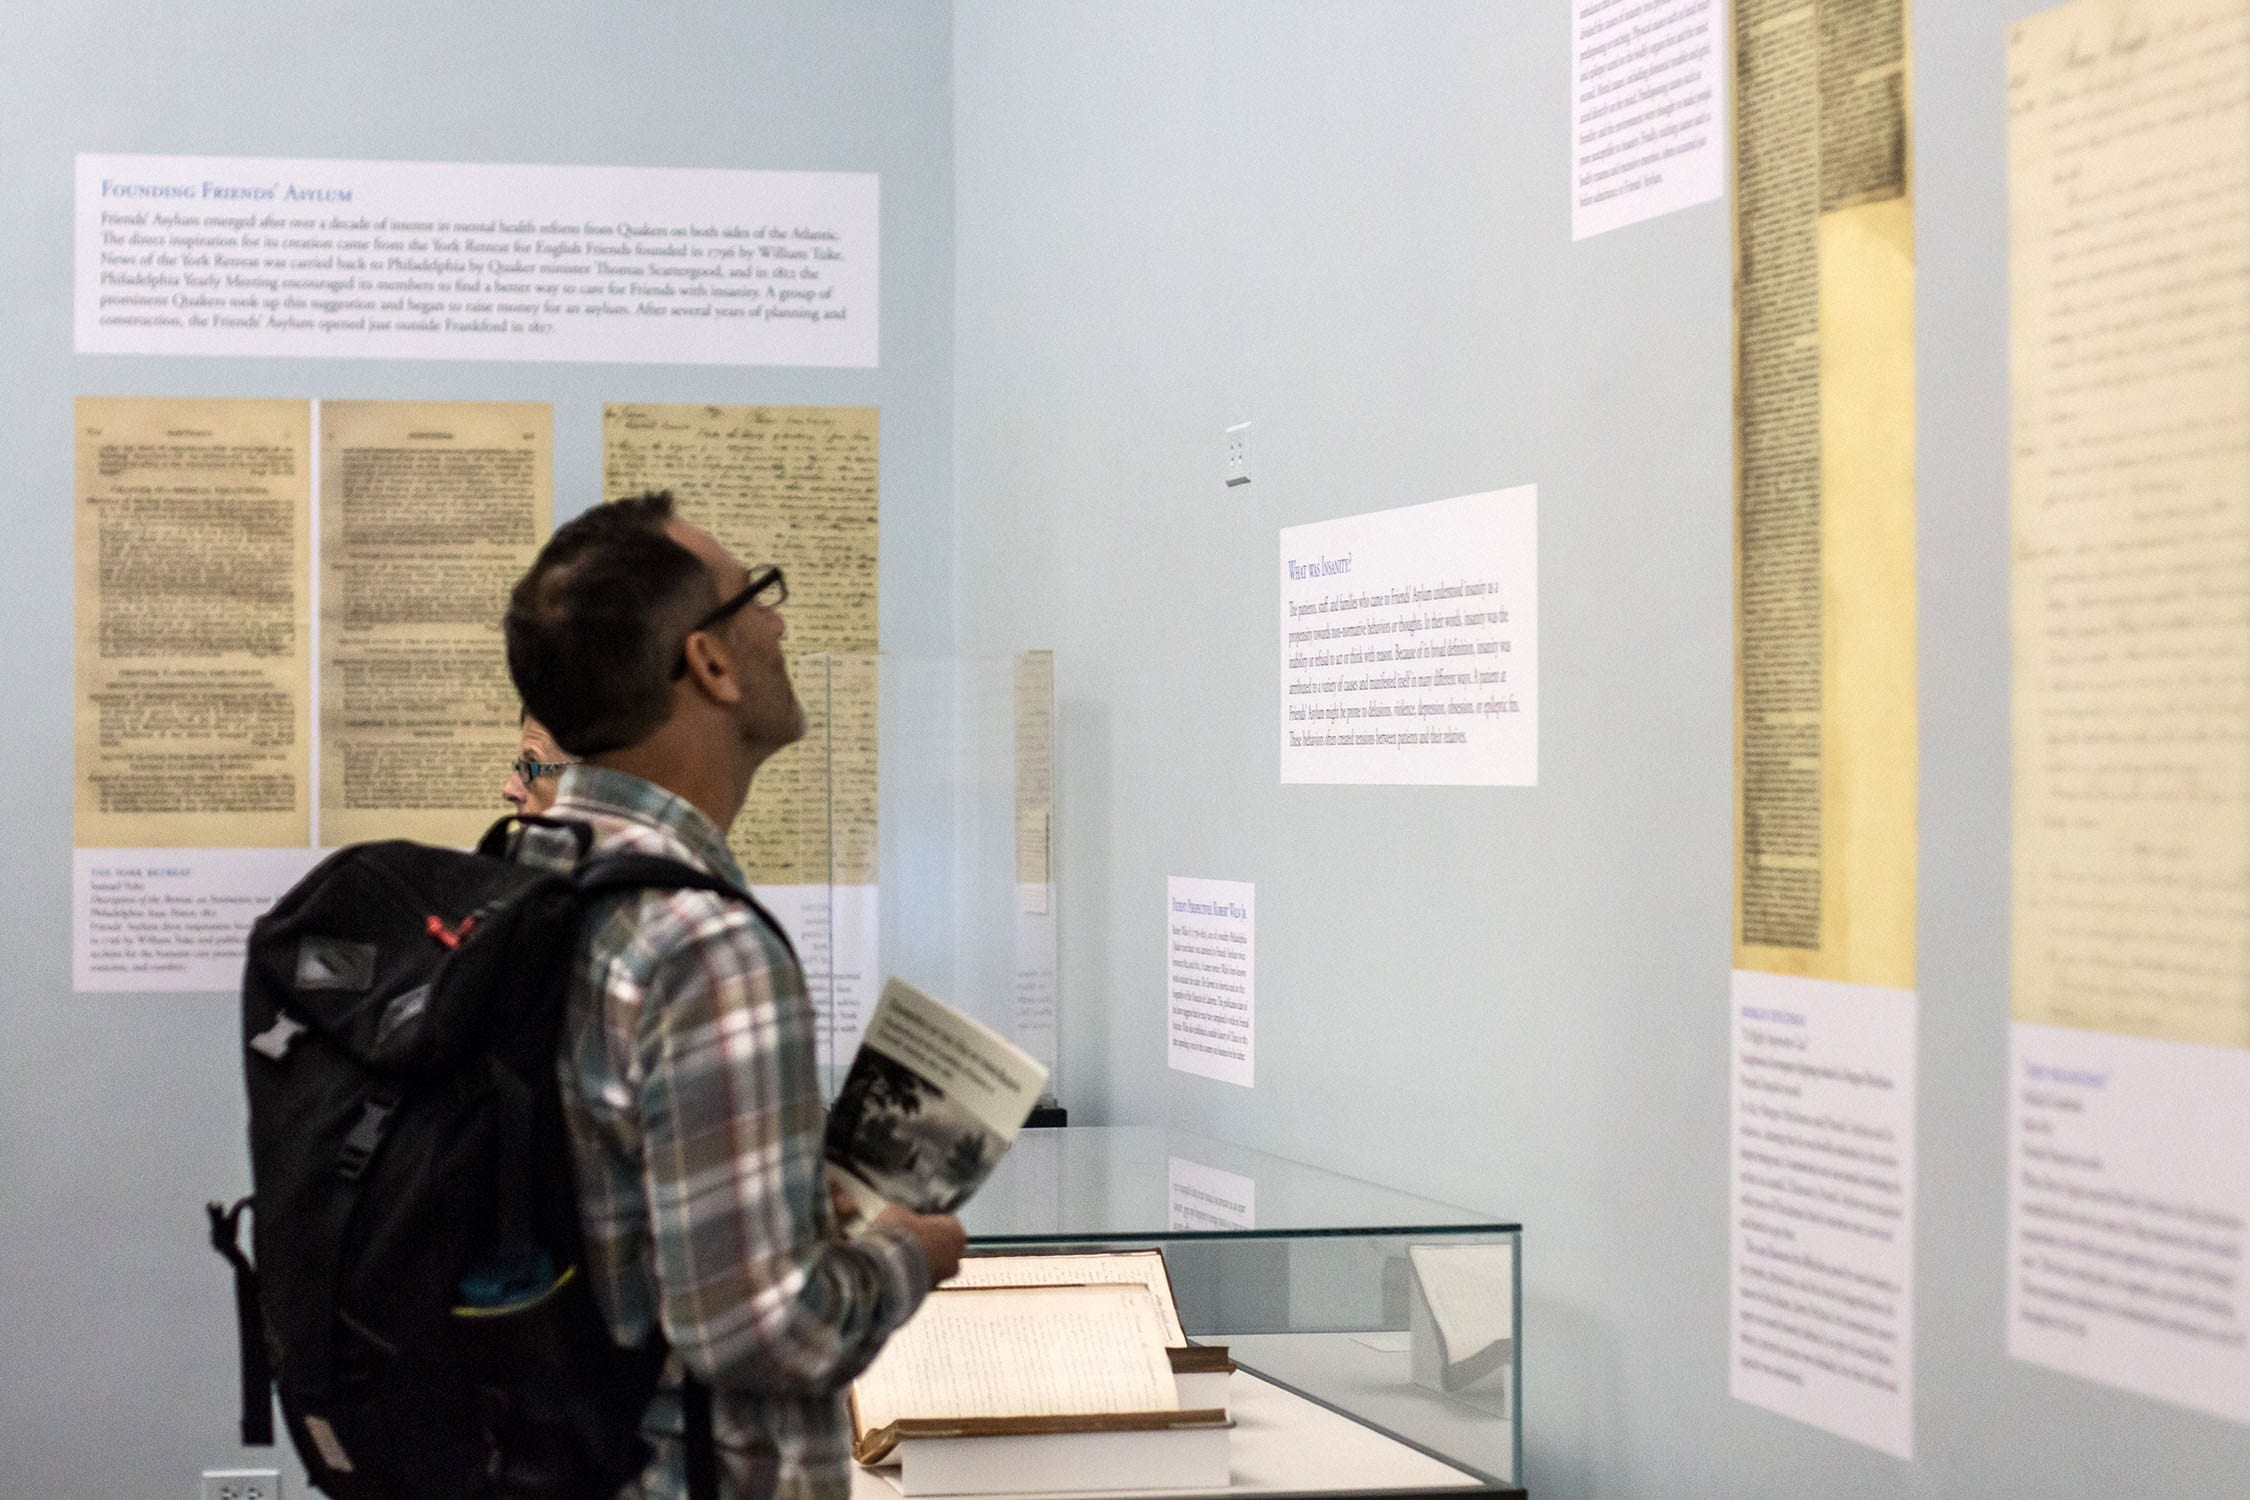 a visitor reads the curators' posted analysis